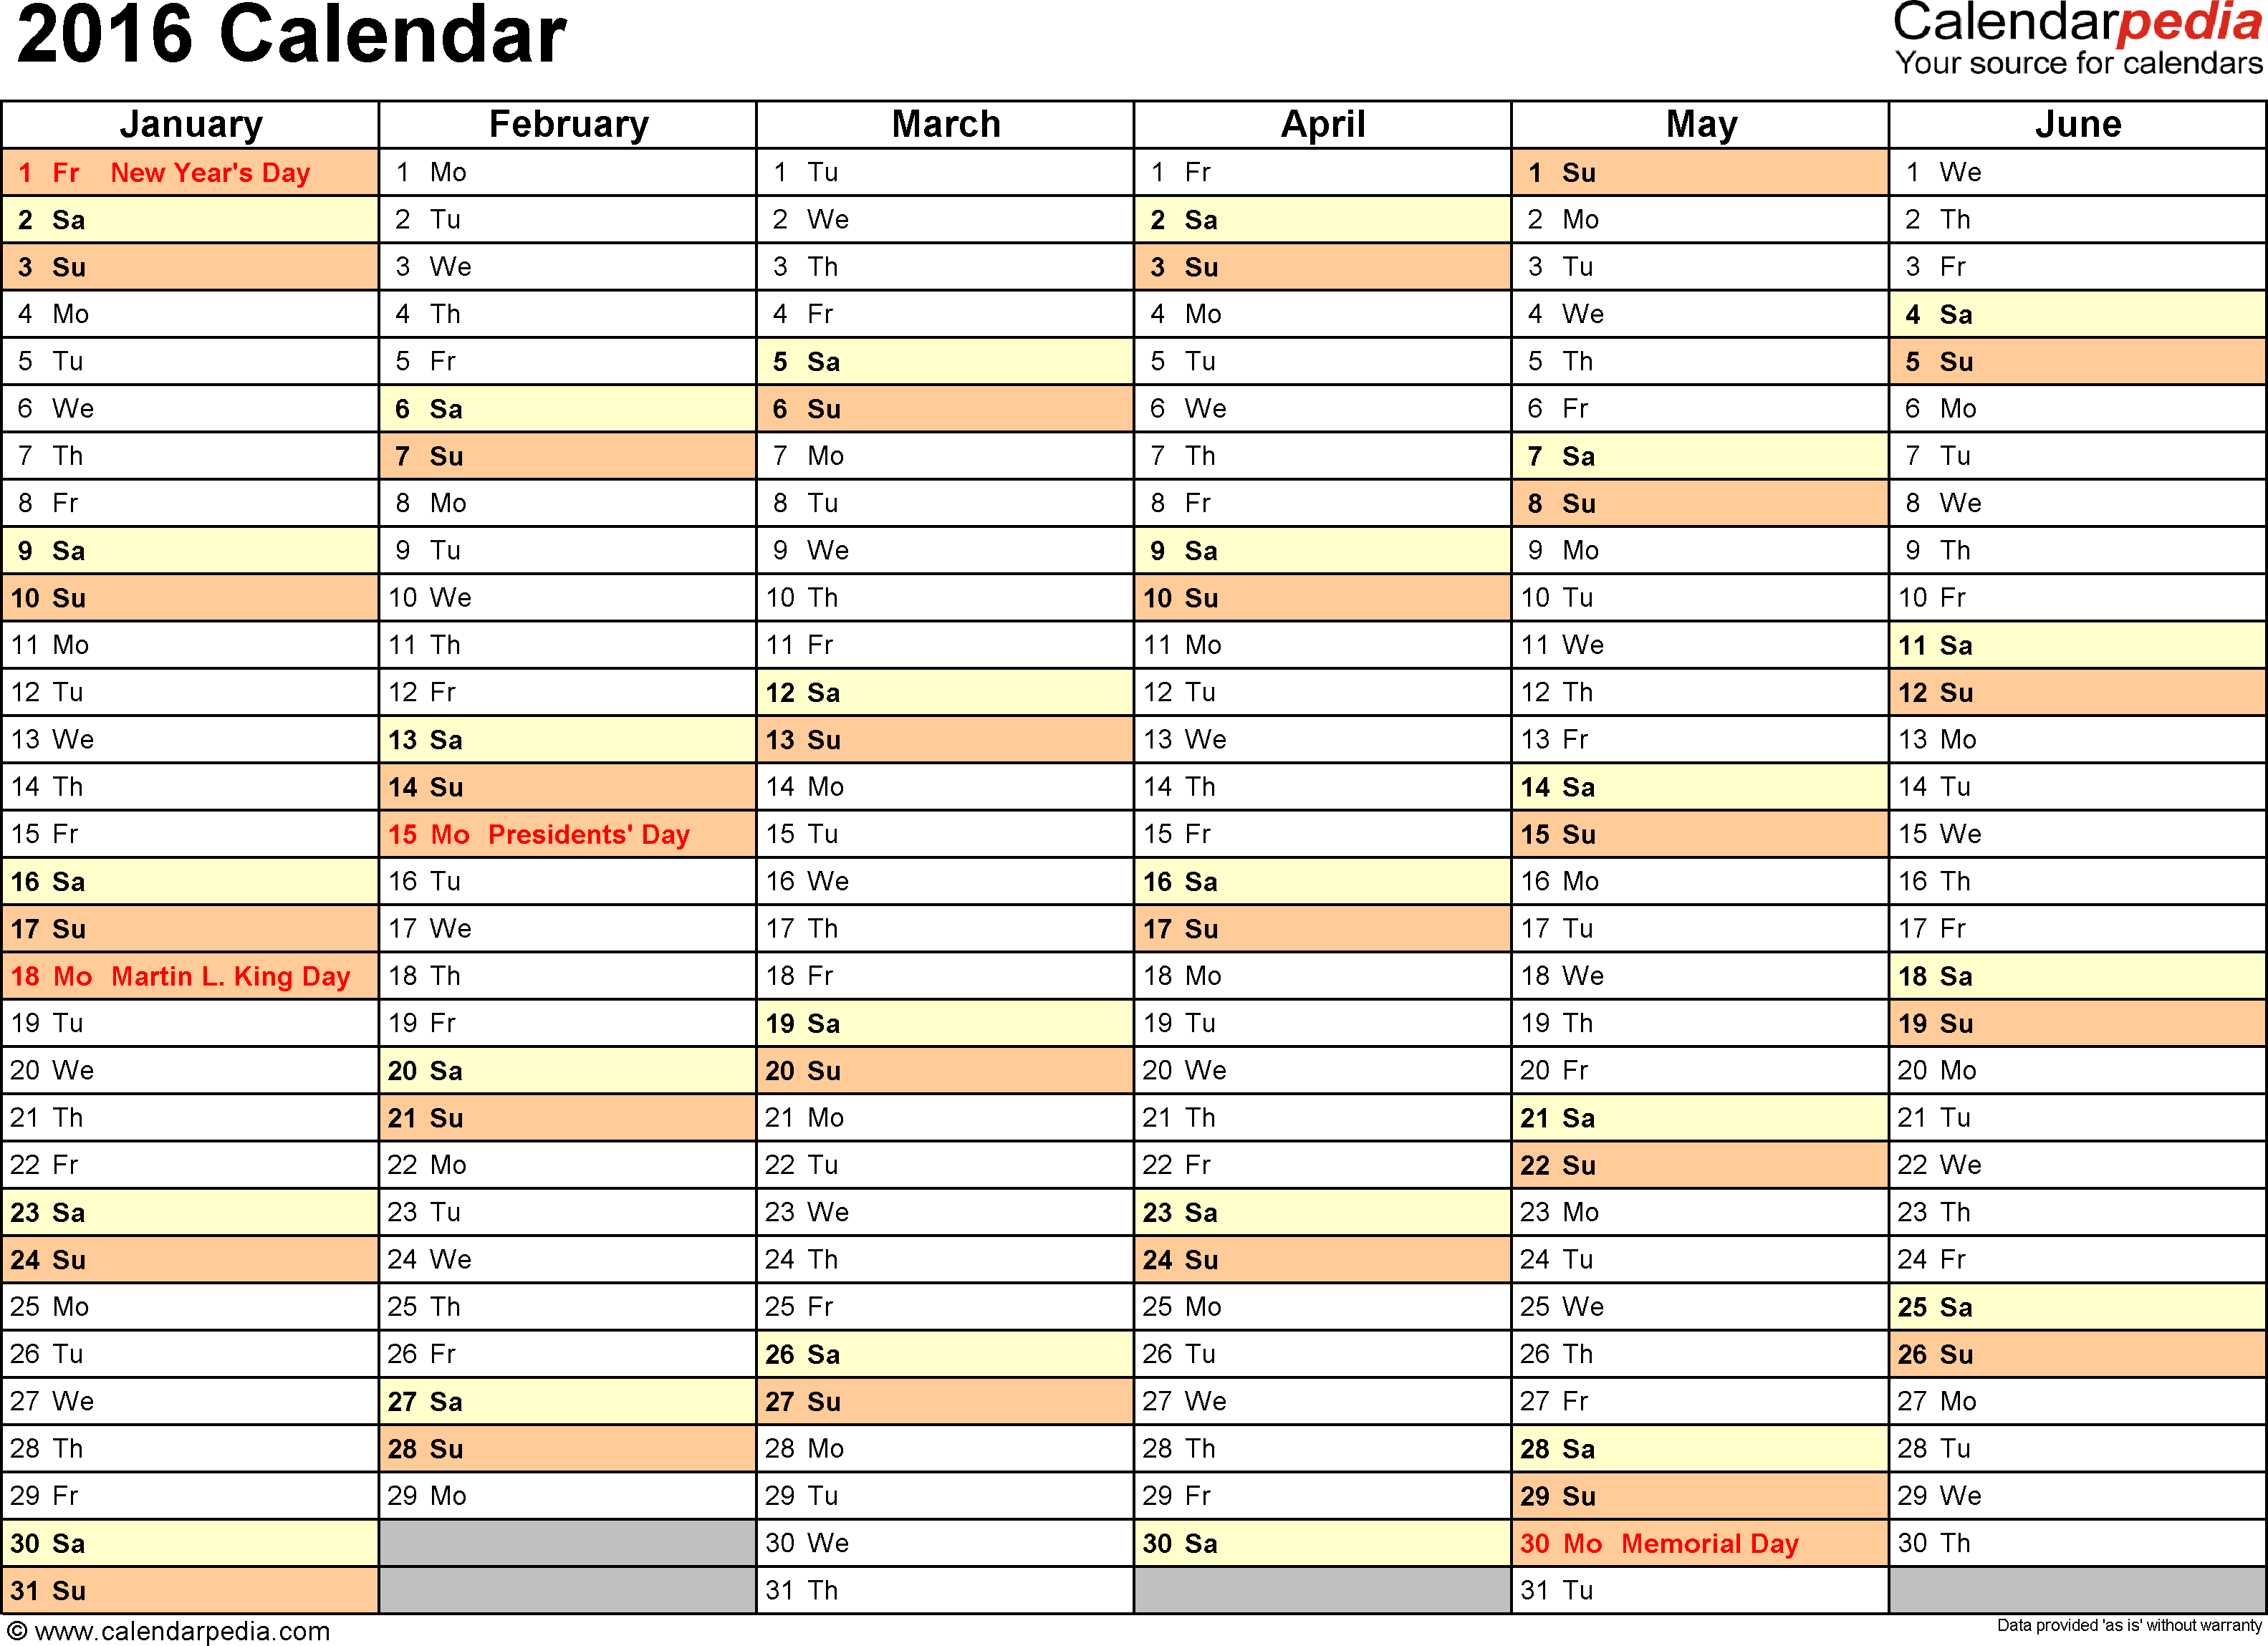 Ediblewildsus  Mesmerizing  Calendar  Download  Free Printable Excel Templates Xls With Excellent Template   Calendar For Excel Months Horizontally  Pages Landscape Orientation With Amusing Polynomial Fit Excel Also Excel Name Column In Addition Delete Duplicate In Excel And Min Excel Function As Well As Wacc In Excel Additionally Formula For Weighted Average In Excel From Calendarpediacom With Ediblewildsus  Excellent  Calendar  Download  Free Printable Excel Templates Xls With Amusing Template   Calendar For Excel Months Horizontally  Pages Landscape Orientation And Mesmerizing Polynomial Fit Excel Also Excel Name Column In Addition Delete Duplicate In Excel From Calendarpediacom